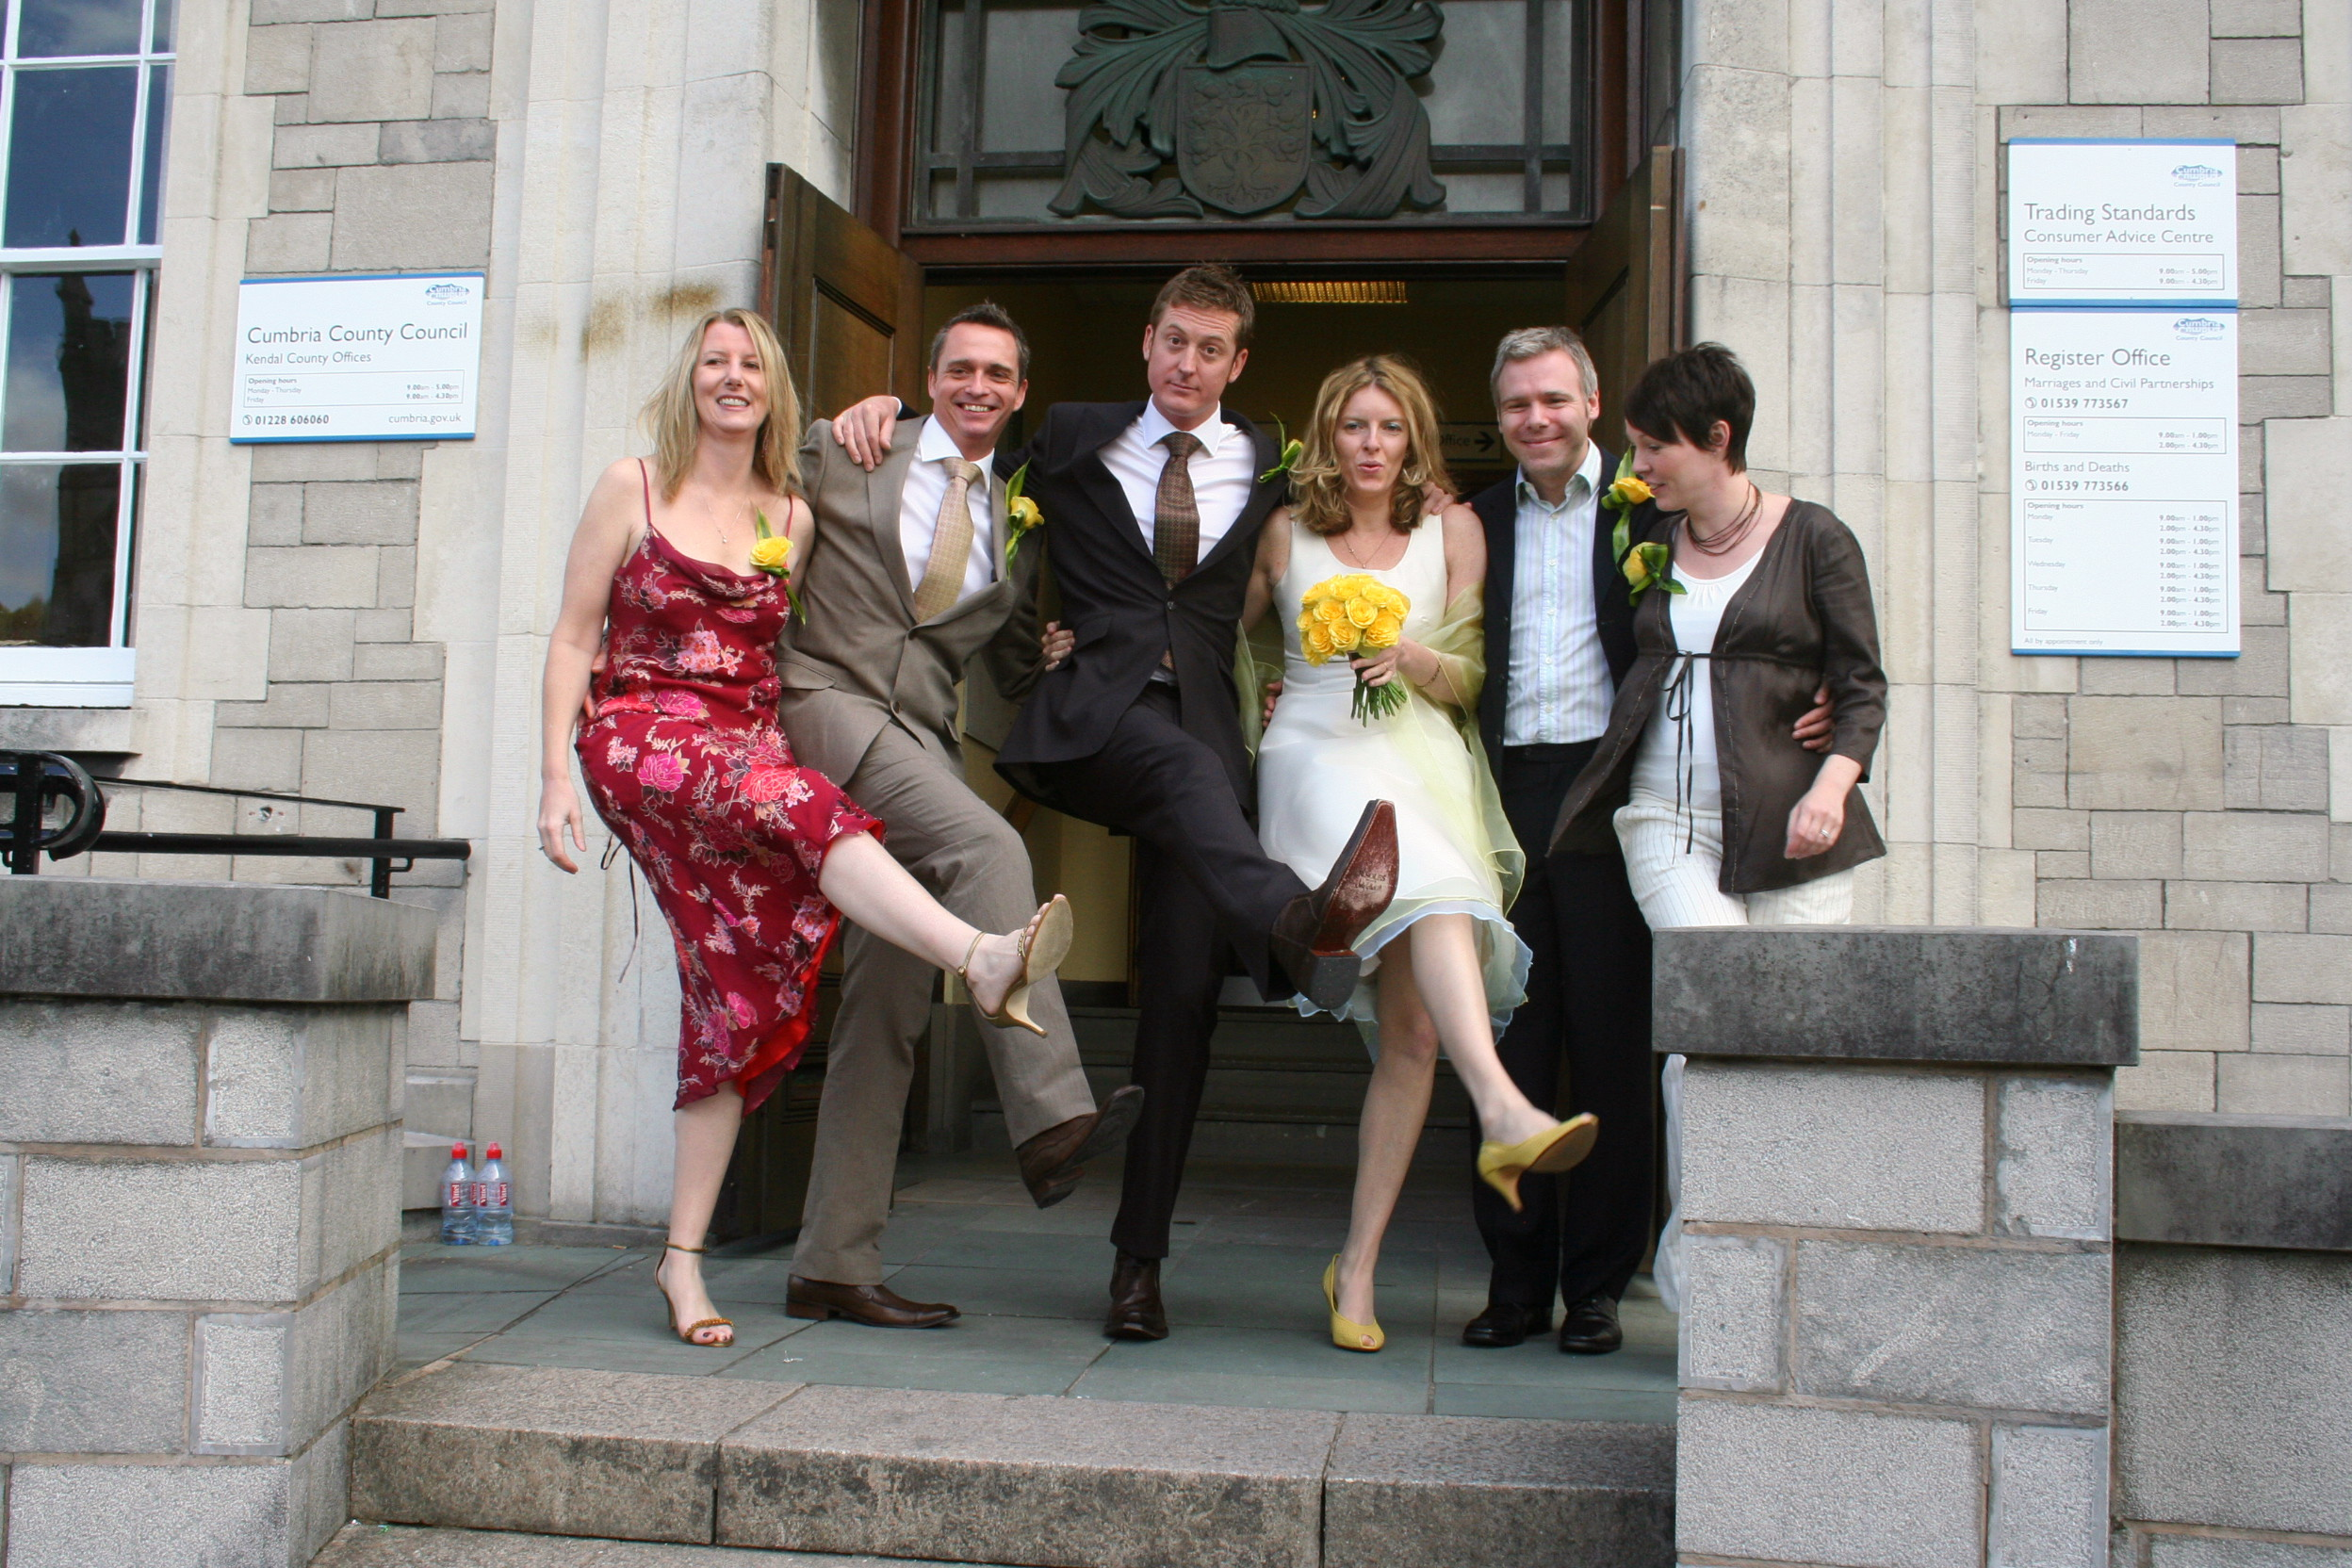 andrew-howes-brown-midweight-two-piece-suit-wedding-all-uk-made-bespoke.jpg